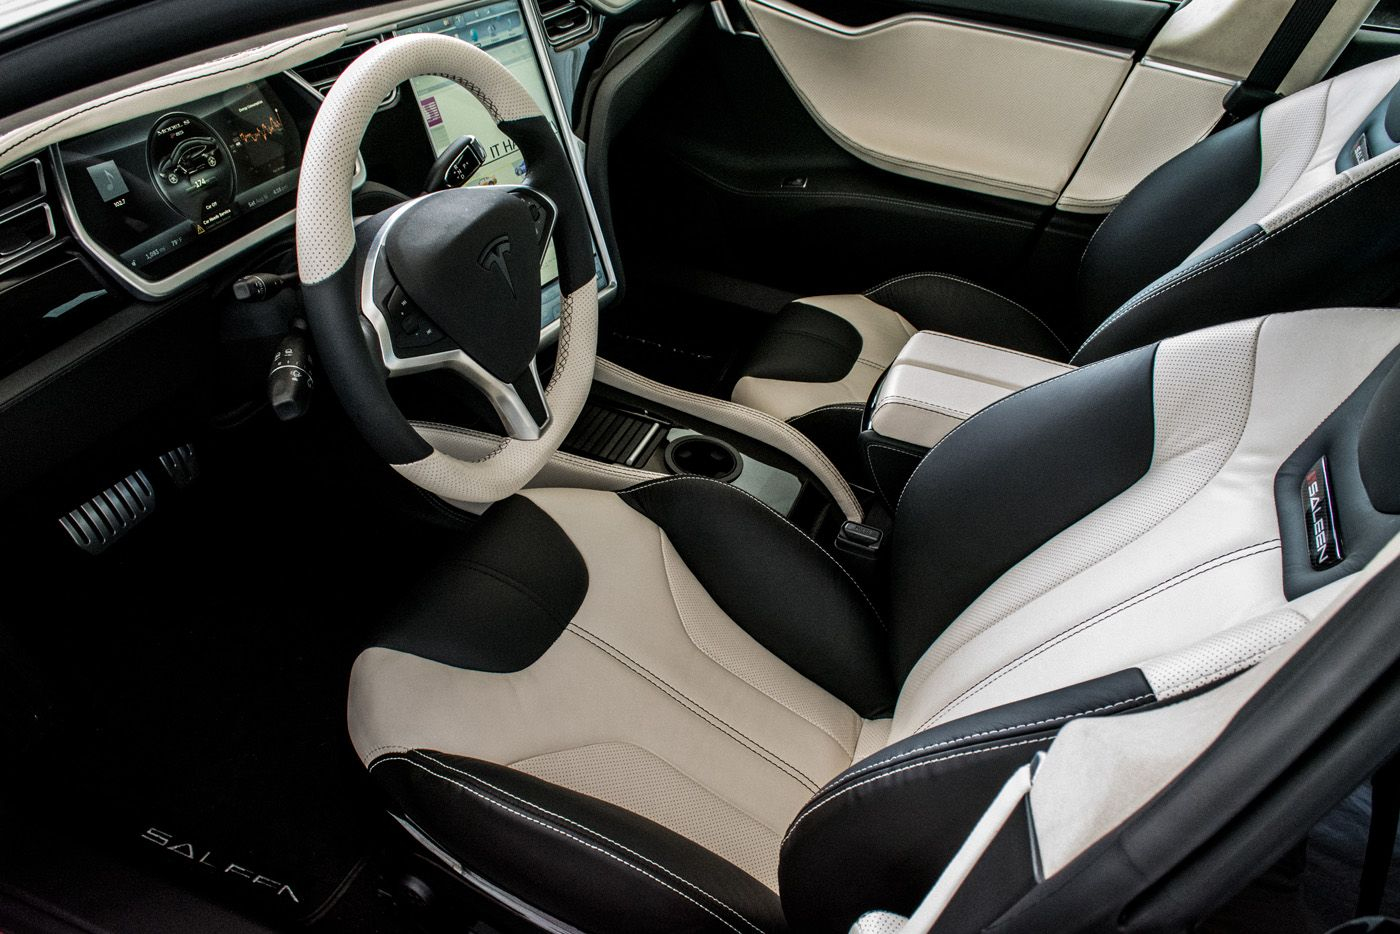 Leather Seats For Interior Also Cover Steering Wheel And LCD Navigation